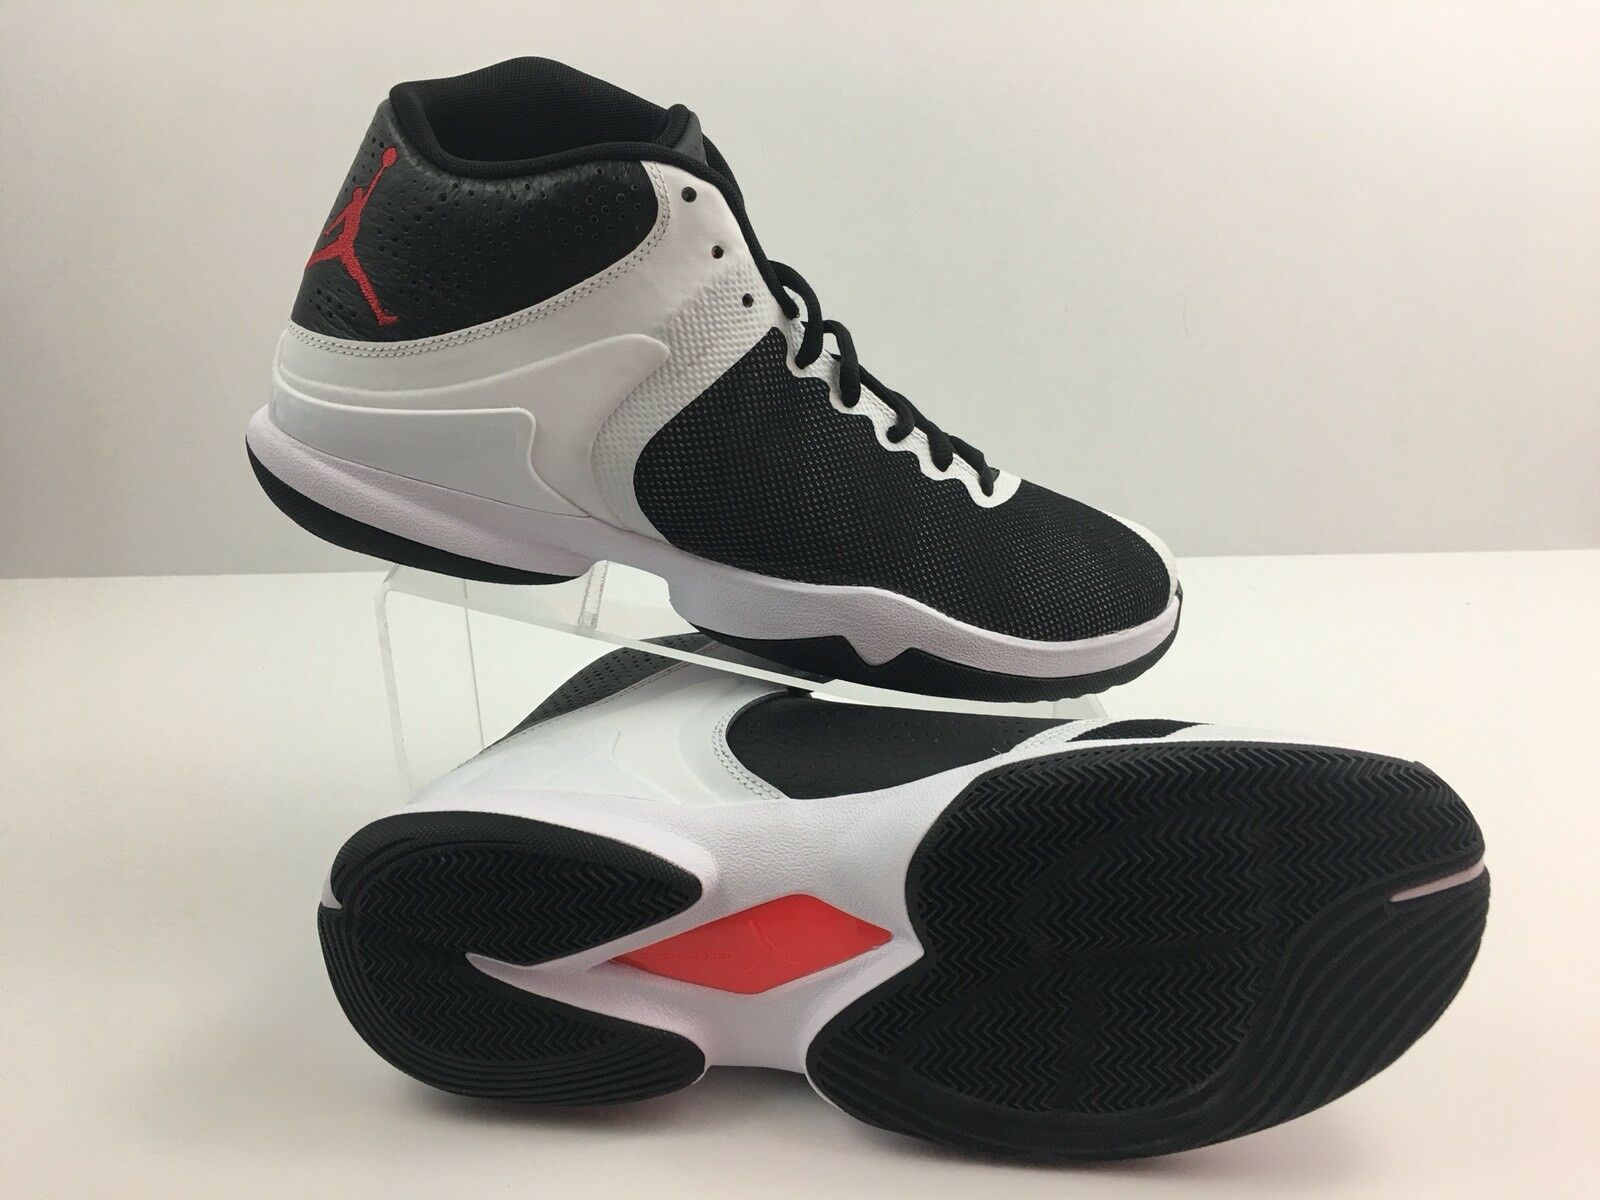 Nike Air Jordan Men's Super Fly 4 PO Basketball - Shoe 819163-002 Size 10 - Basketball NEW eaccef